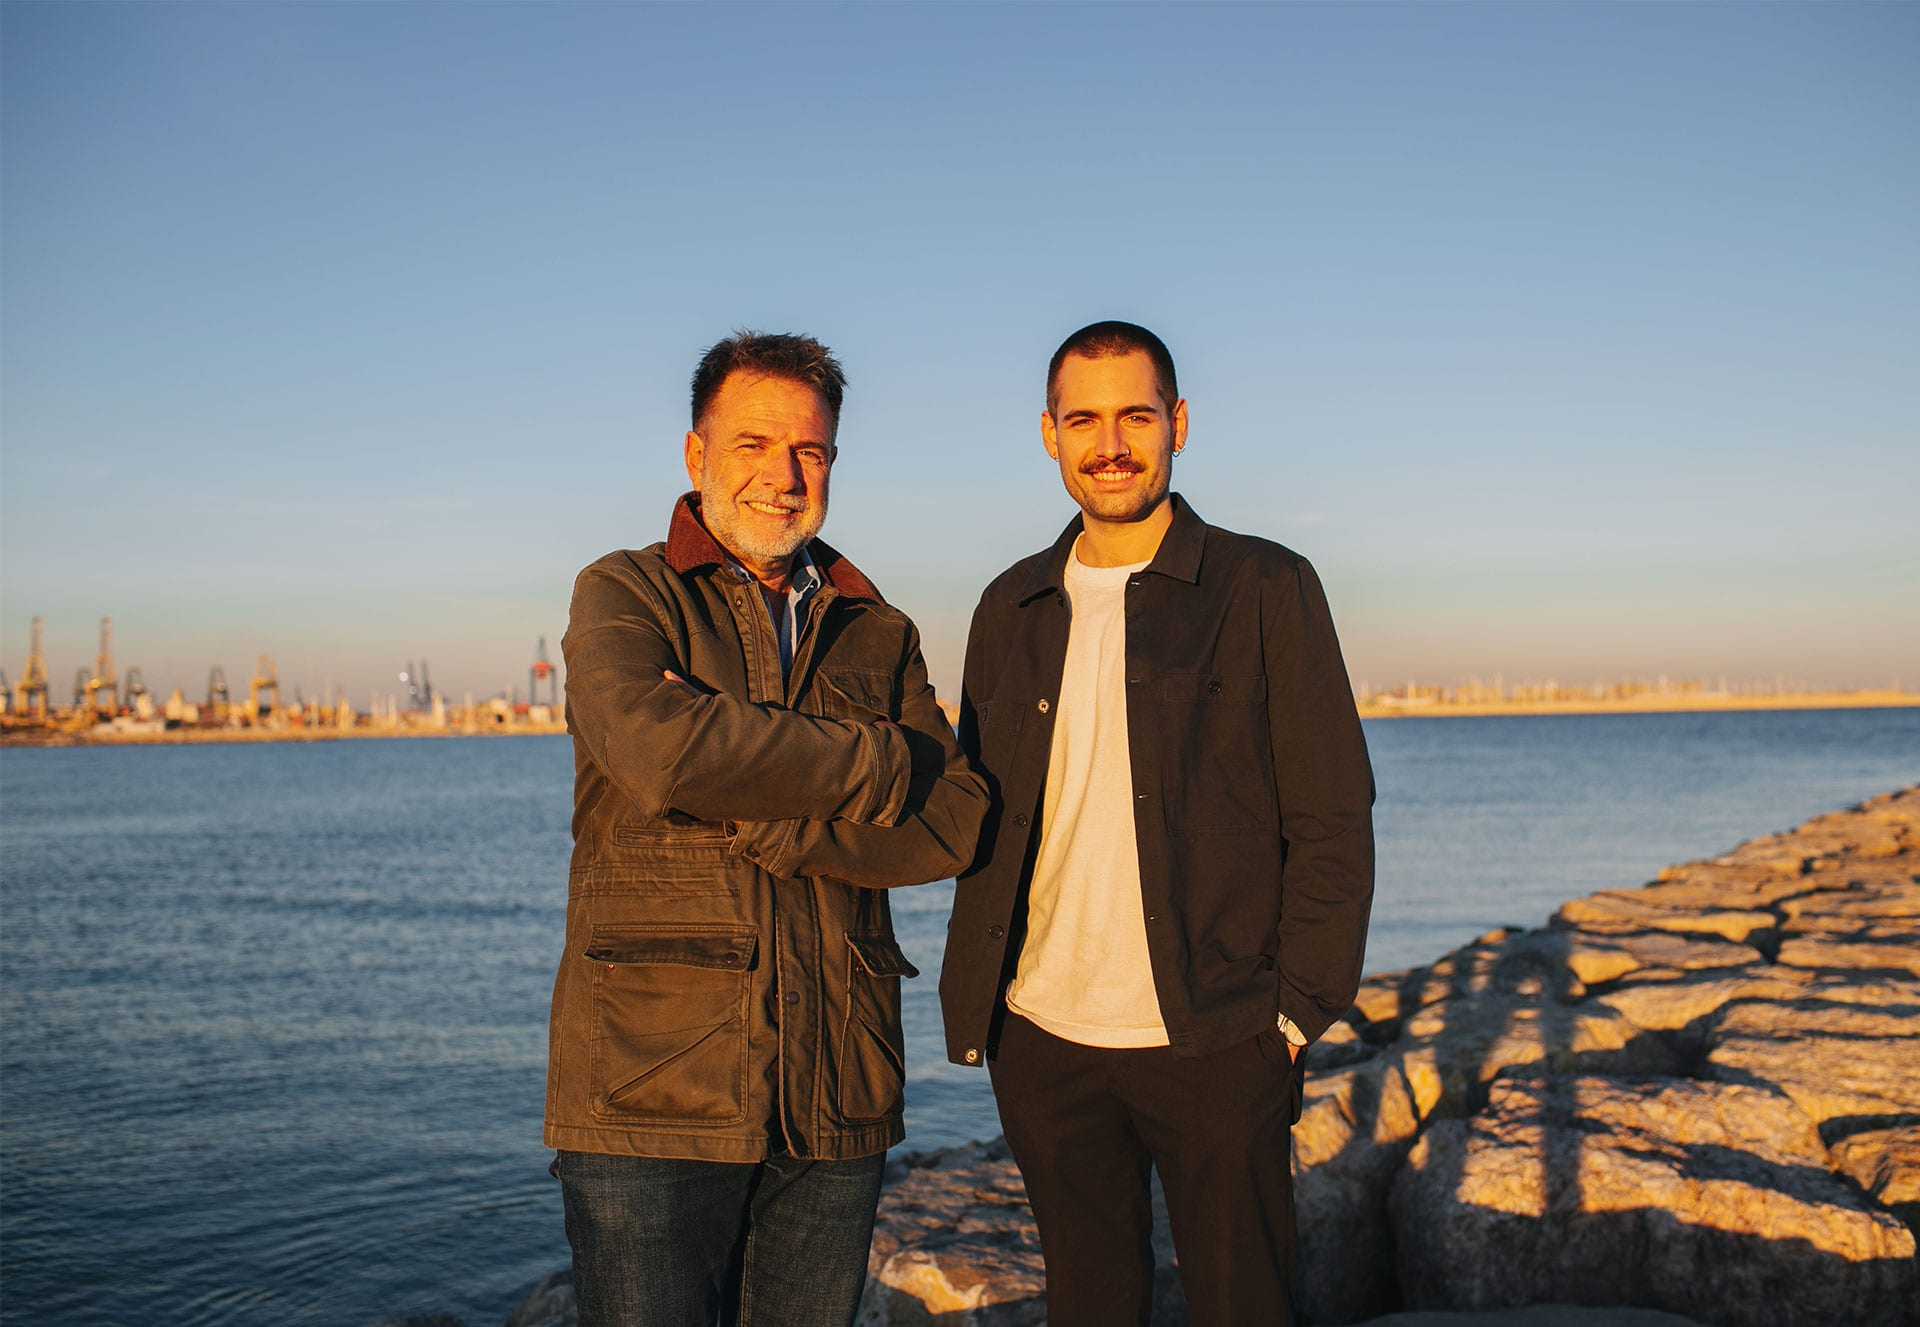 Interview with Manolo Bañó (father) and Manu Bañó (son), specialists in social design